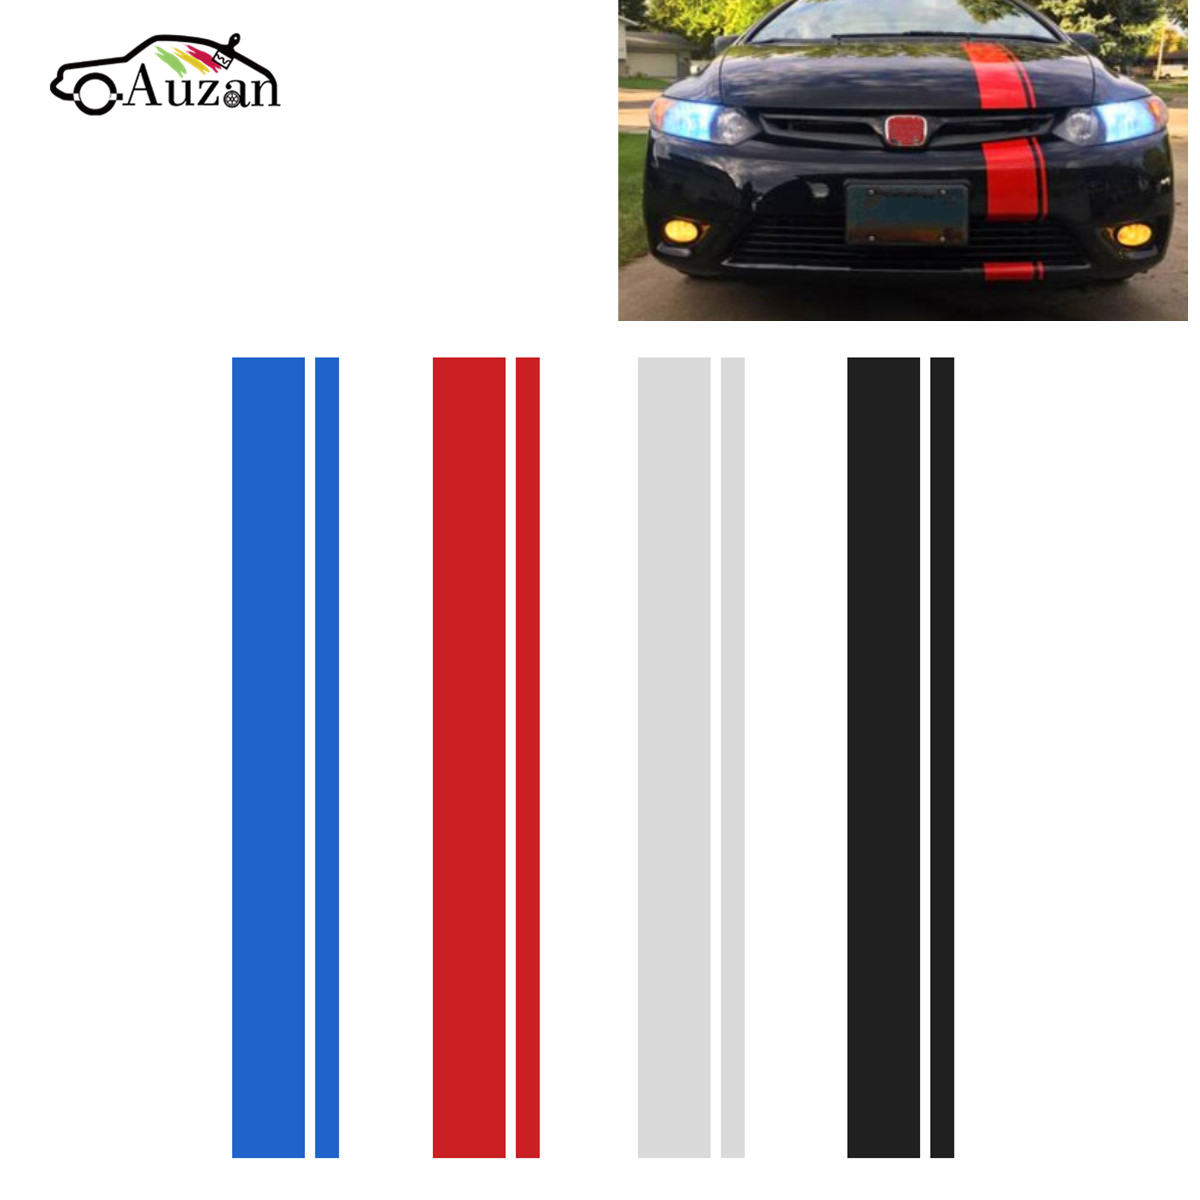 1x 6 Hood Stripe Auto Graphic decal Vinyl car truck body racing stripe universal spider web hood rear window auto car vinyl decal stickers